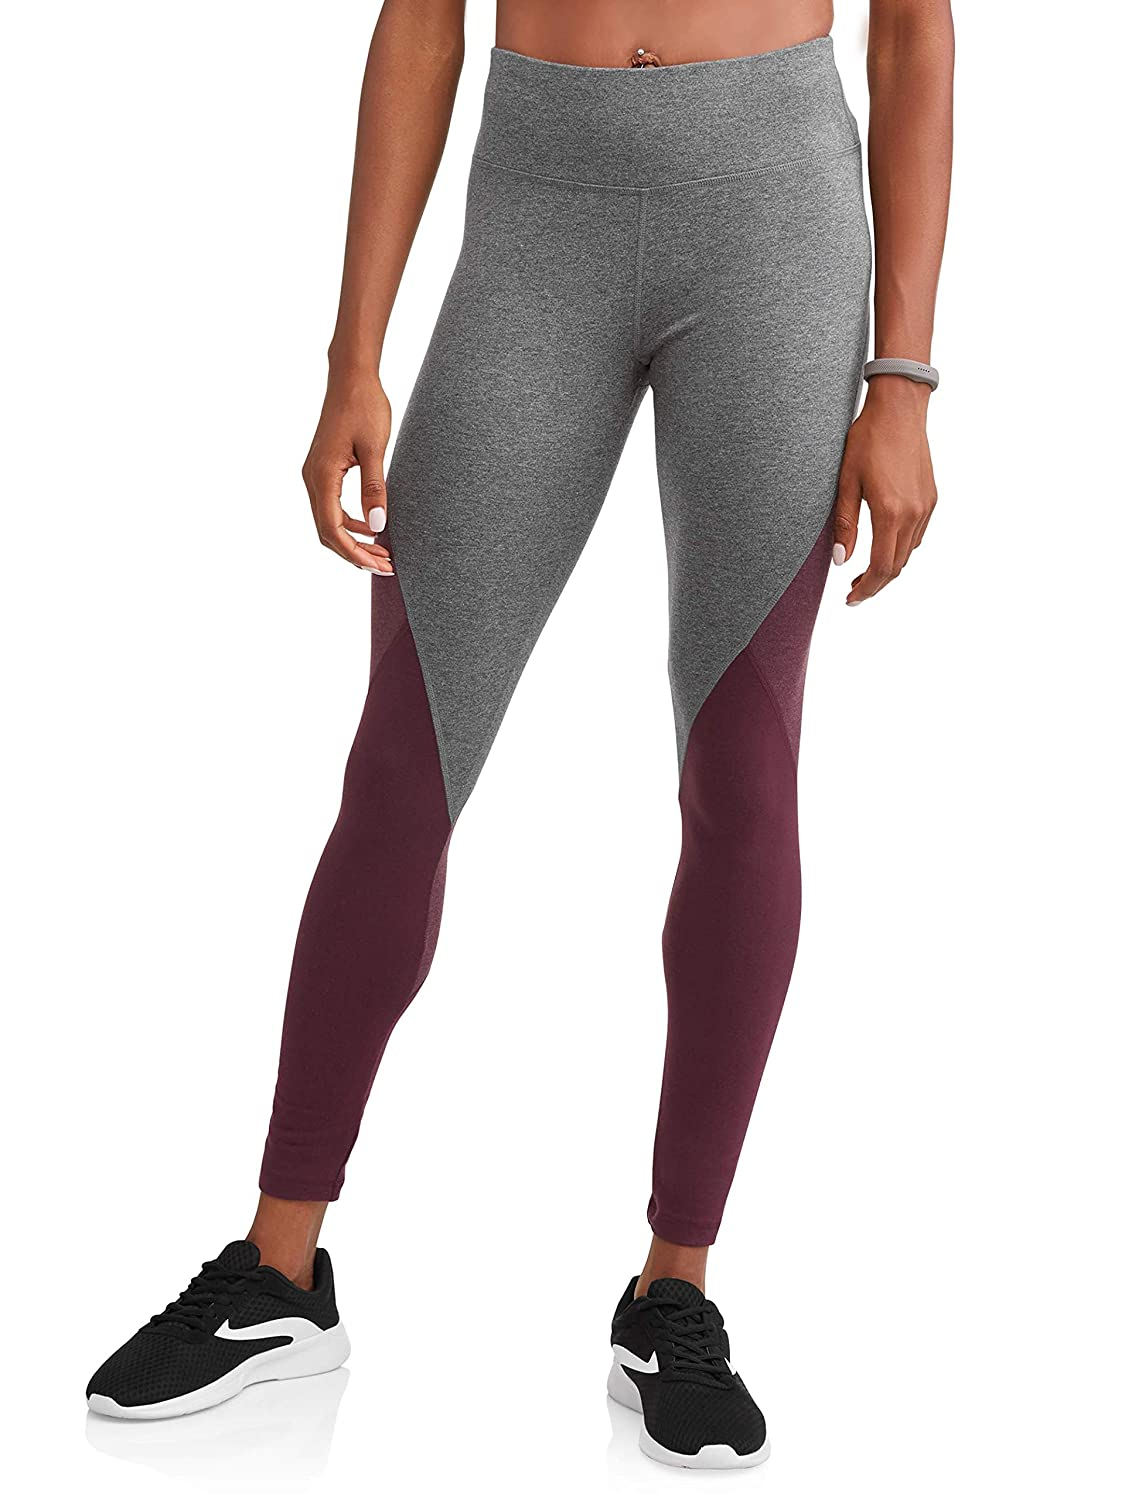 Metropolis Burgundy Athletic Works Women's Dri More Core Yoga Ankle Leggings